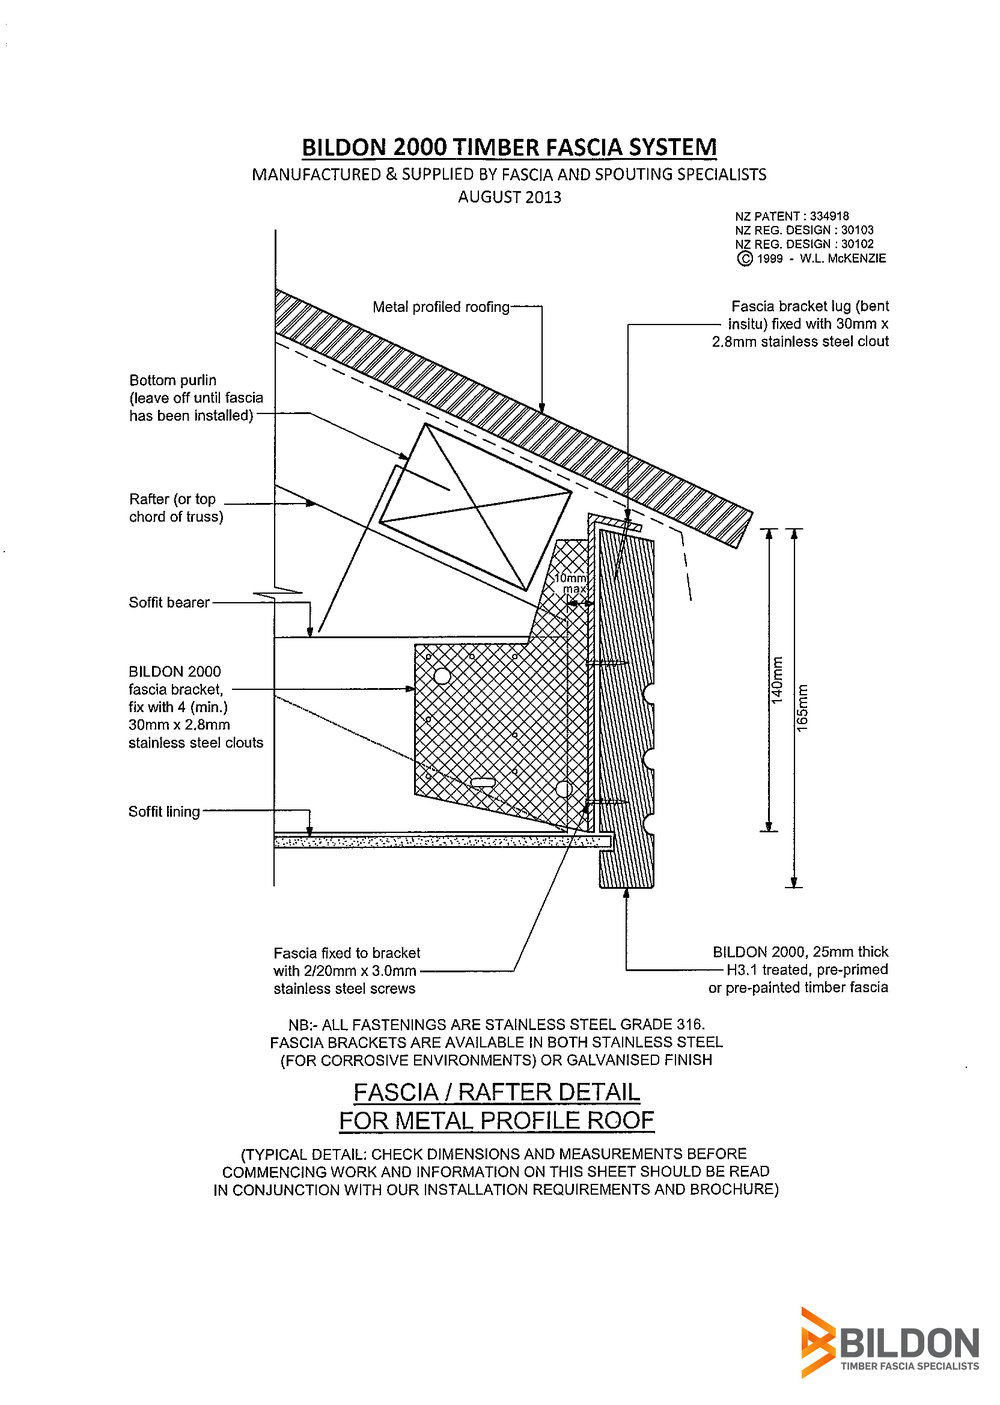 Fascia:Rafter Detail for metal Profile Roof.jpg